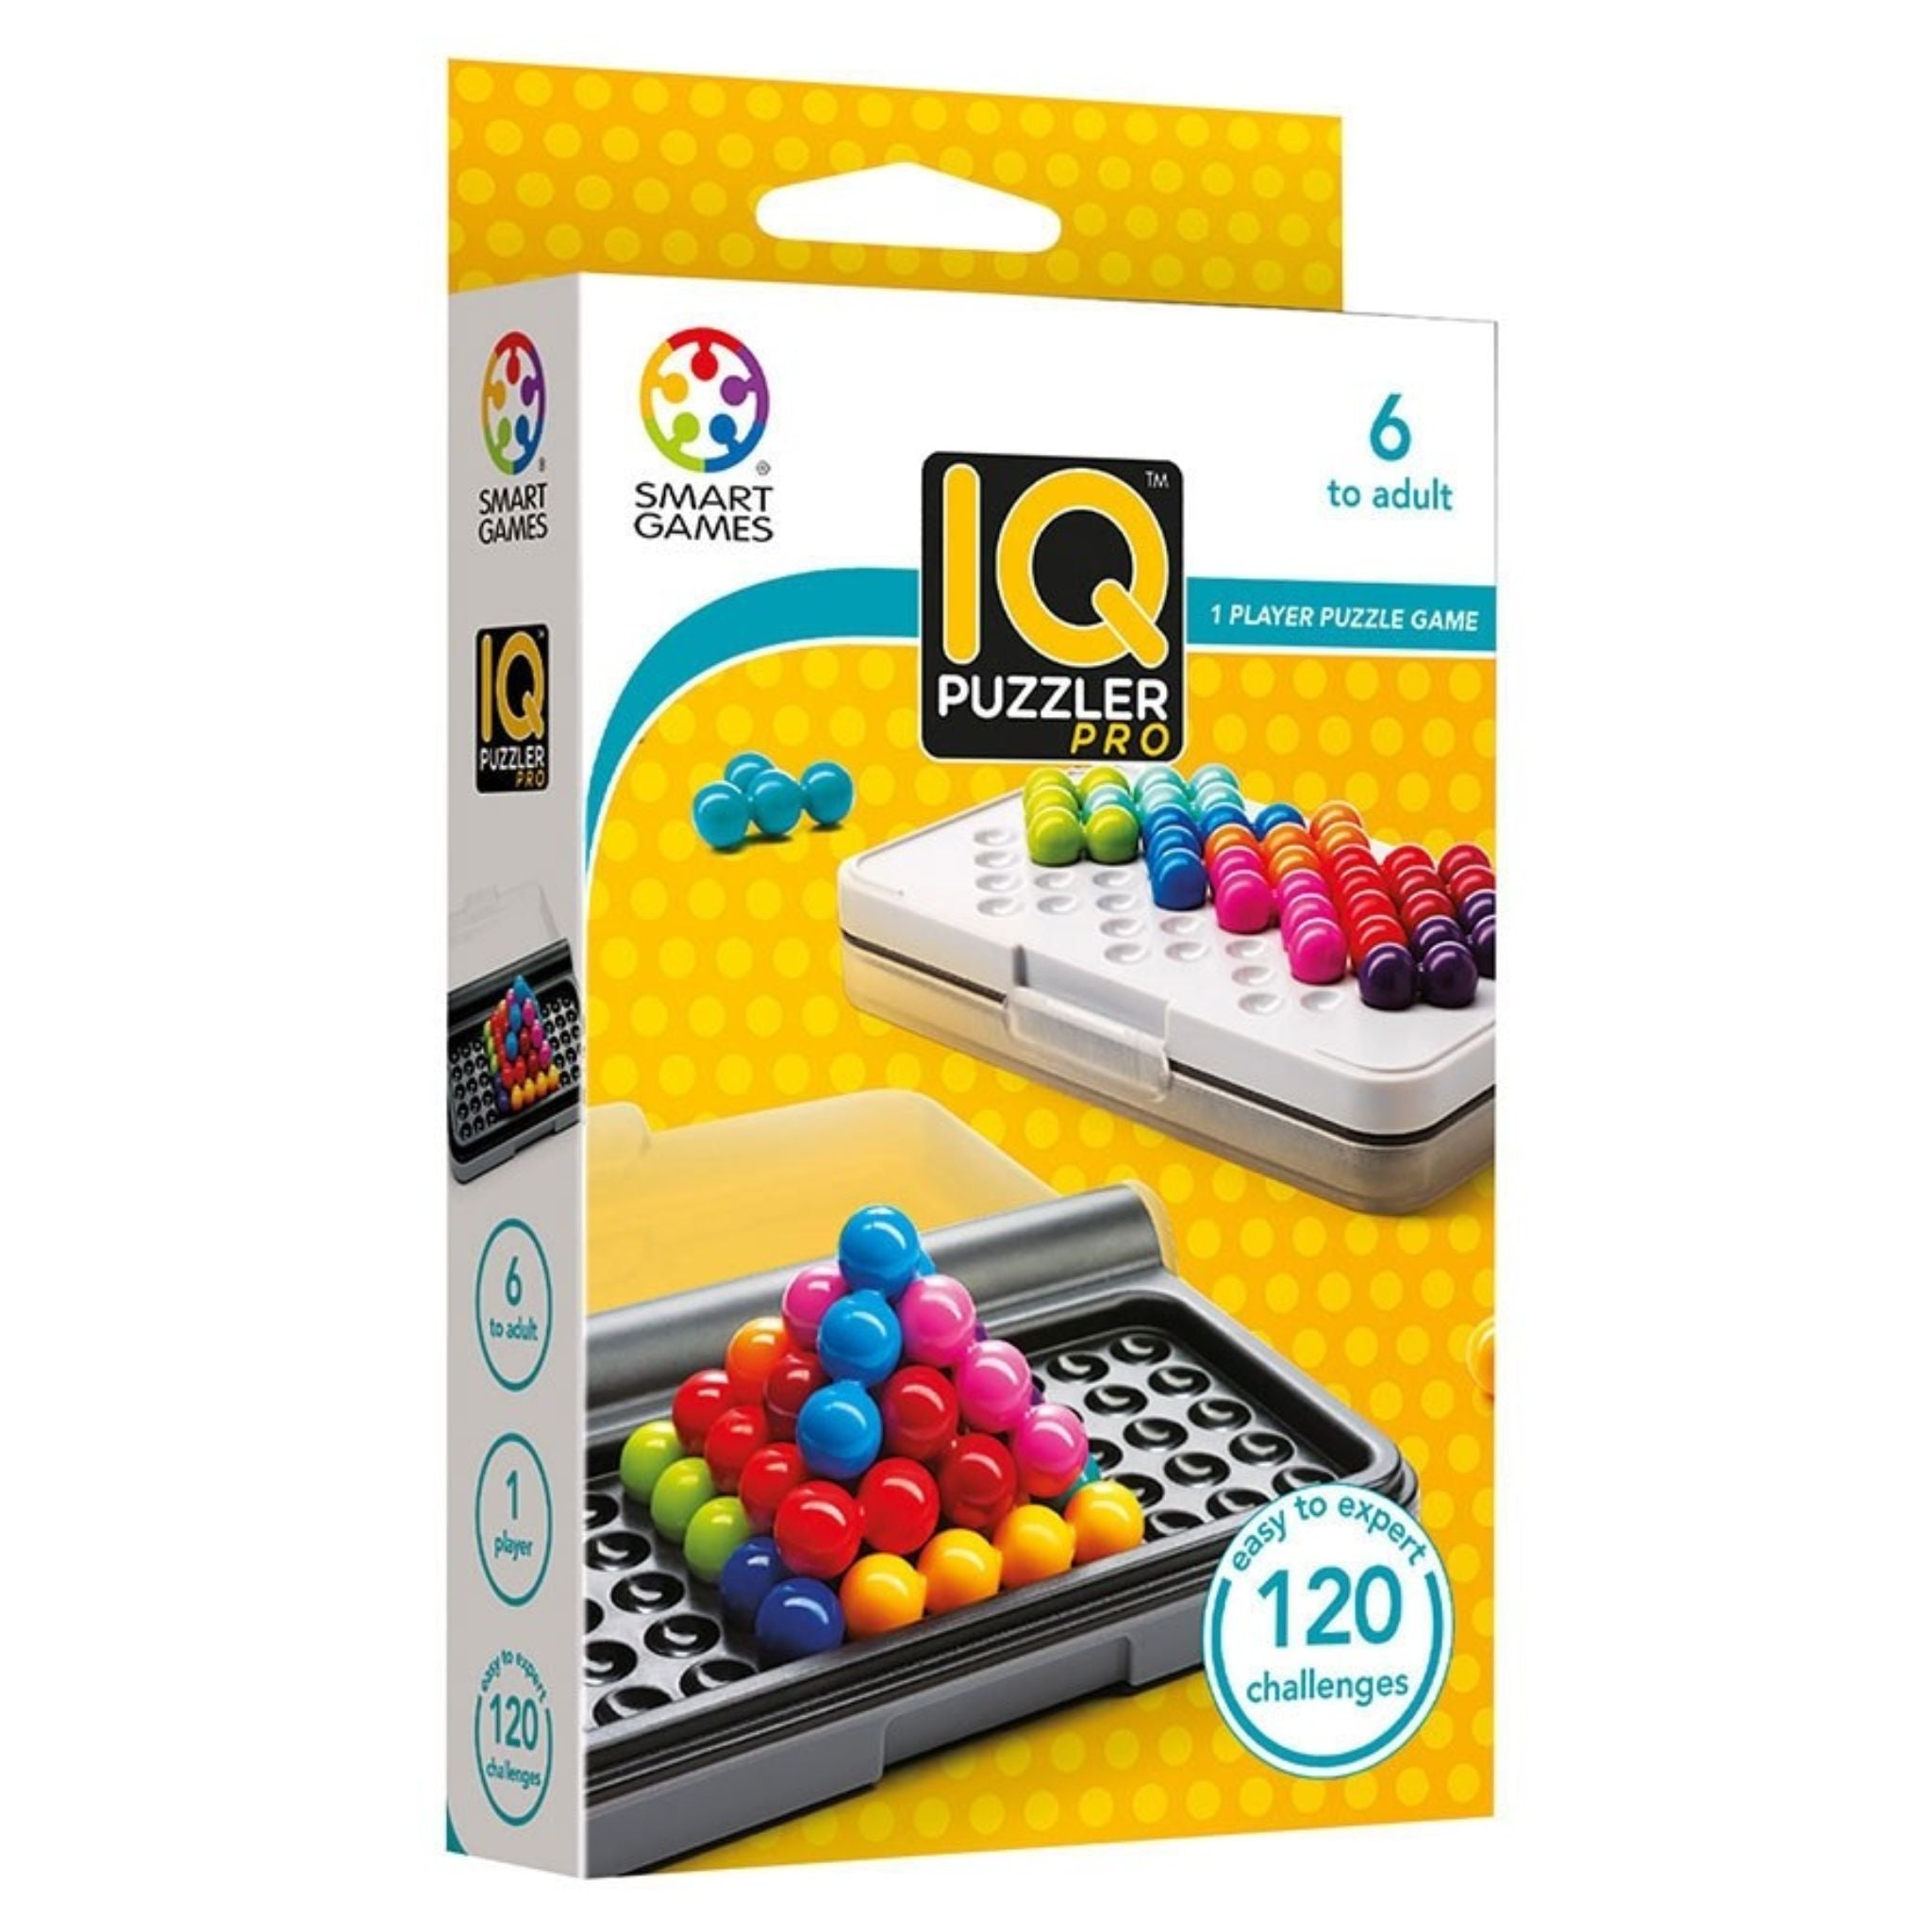 Smart Games IQ Puzzler PRO - Display 12 pcs